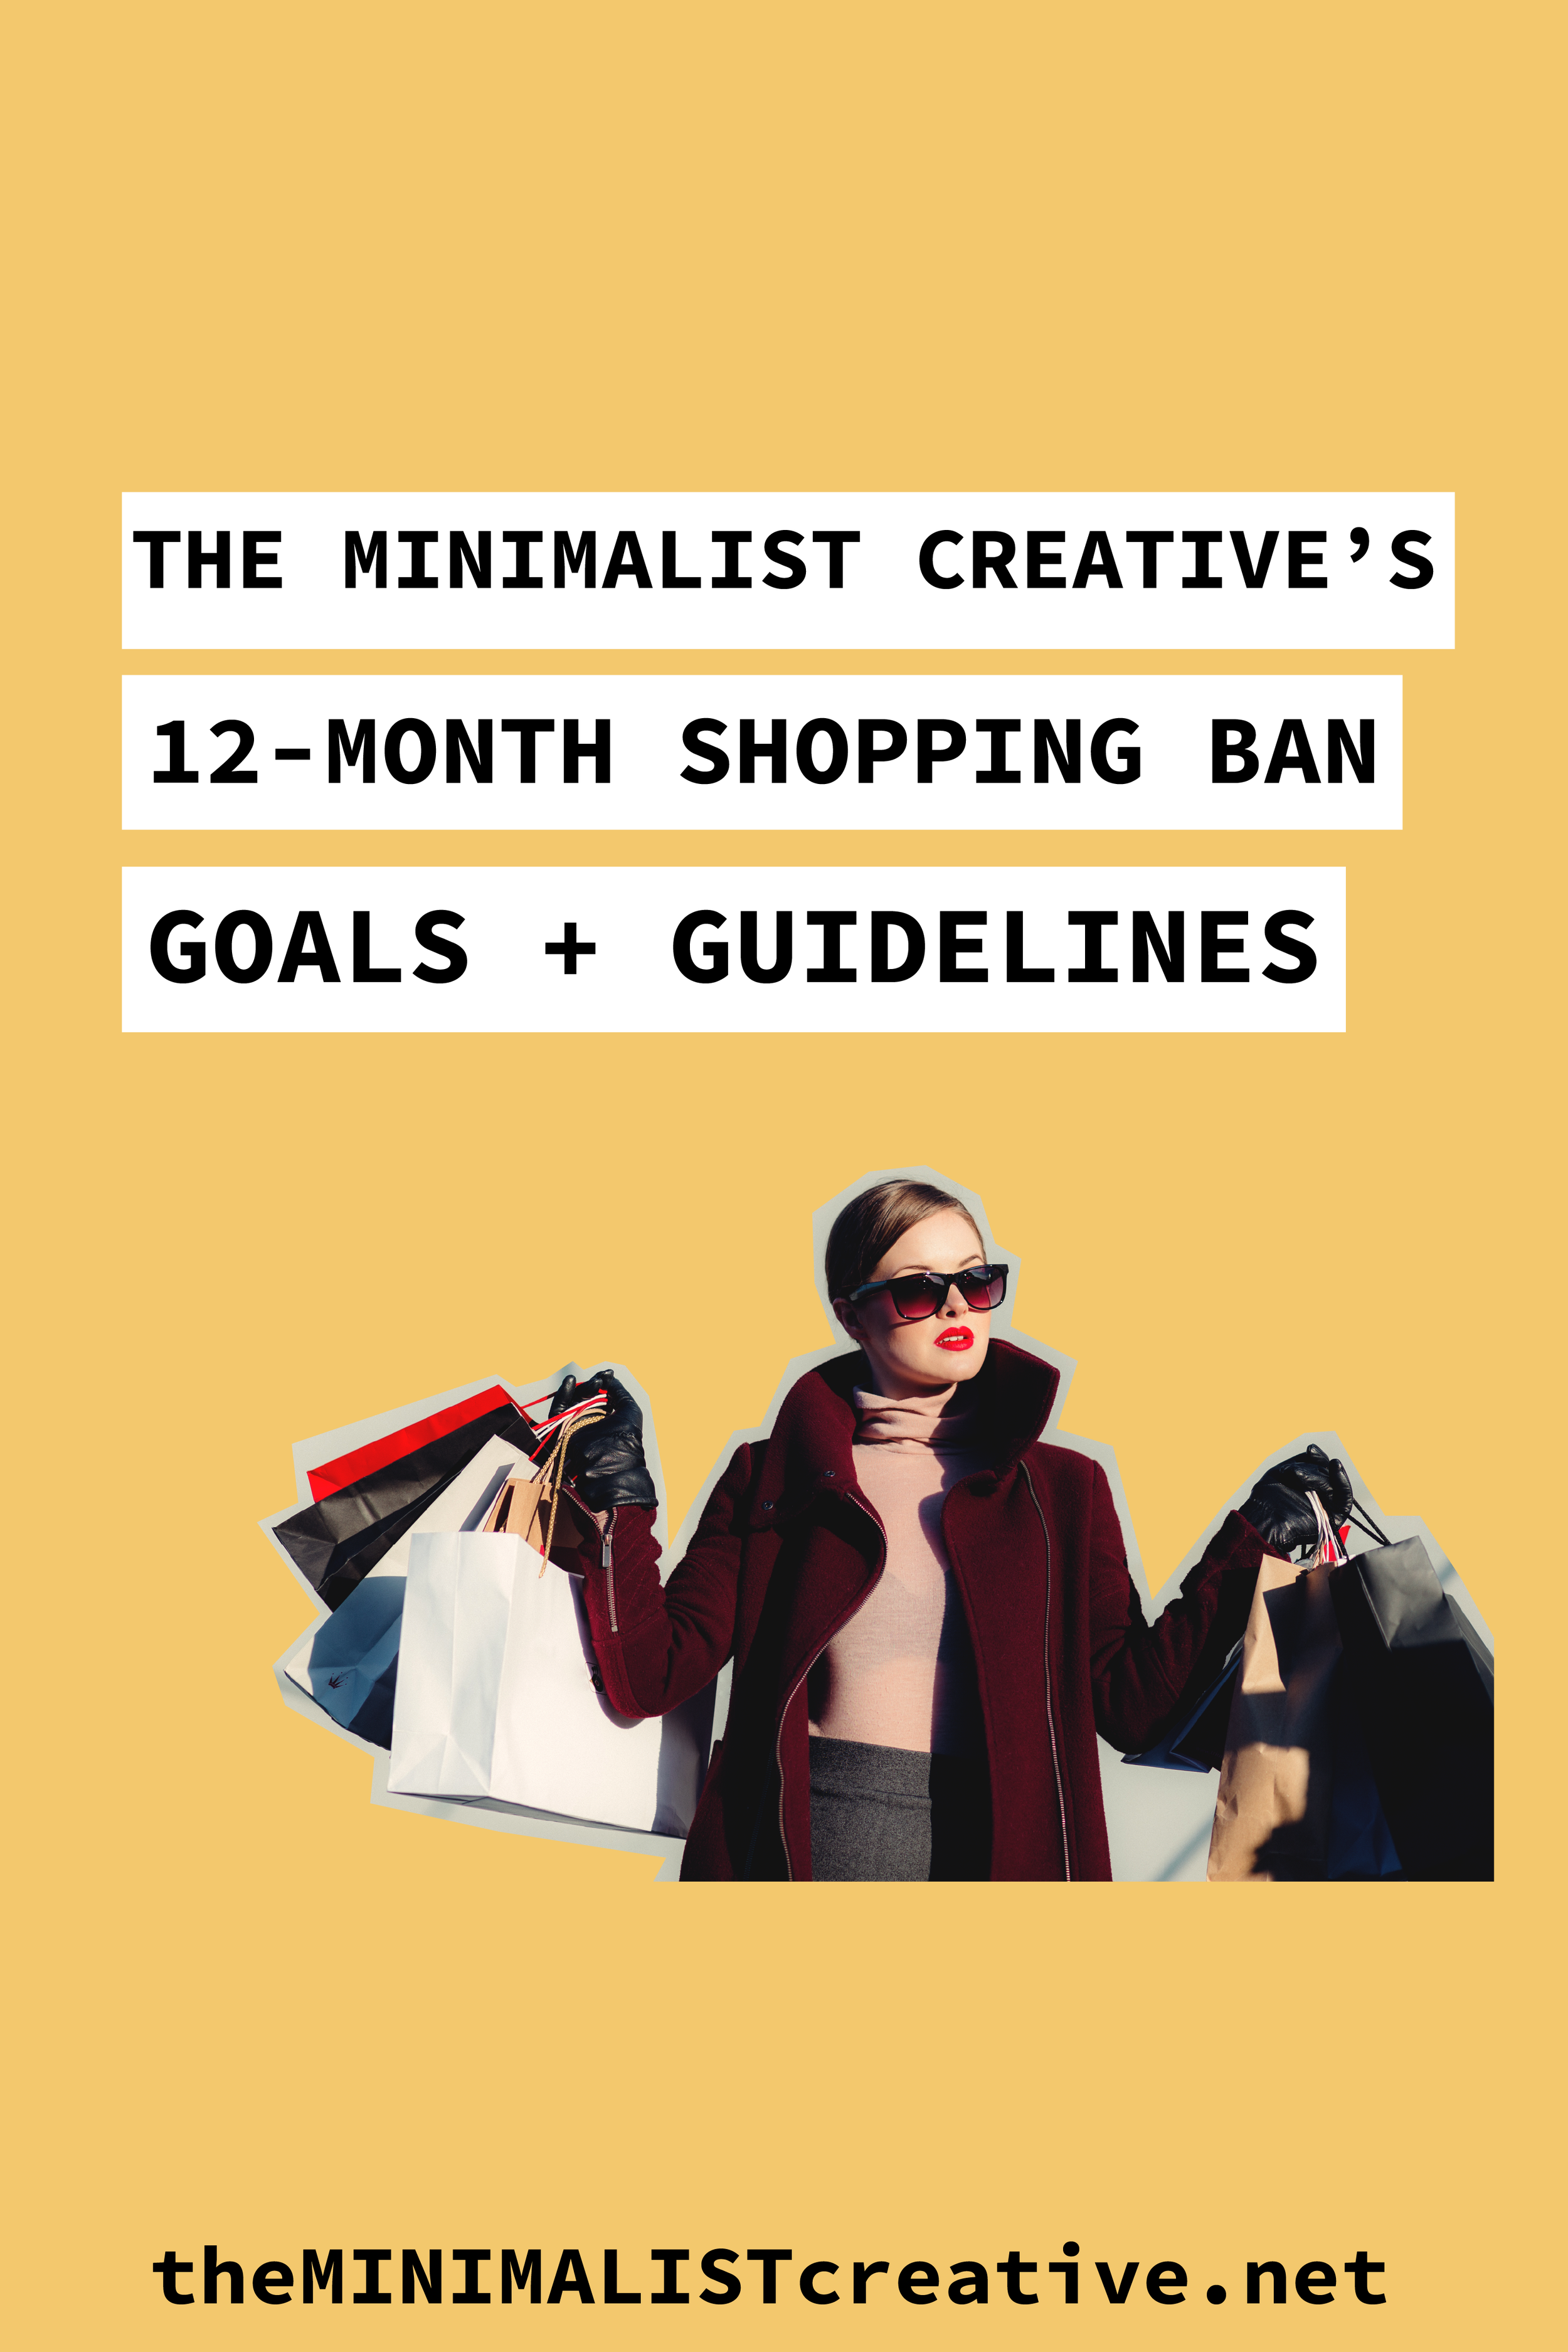 The Minimalist Creative's 12 Month Shopping Ban: Goals and Guidelines